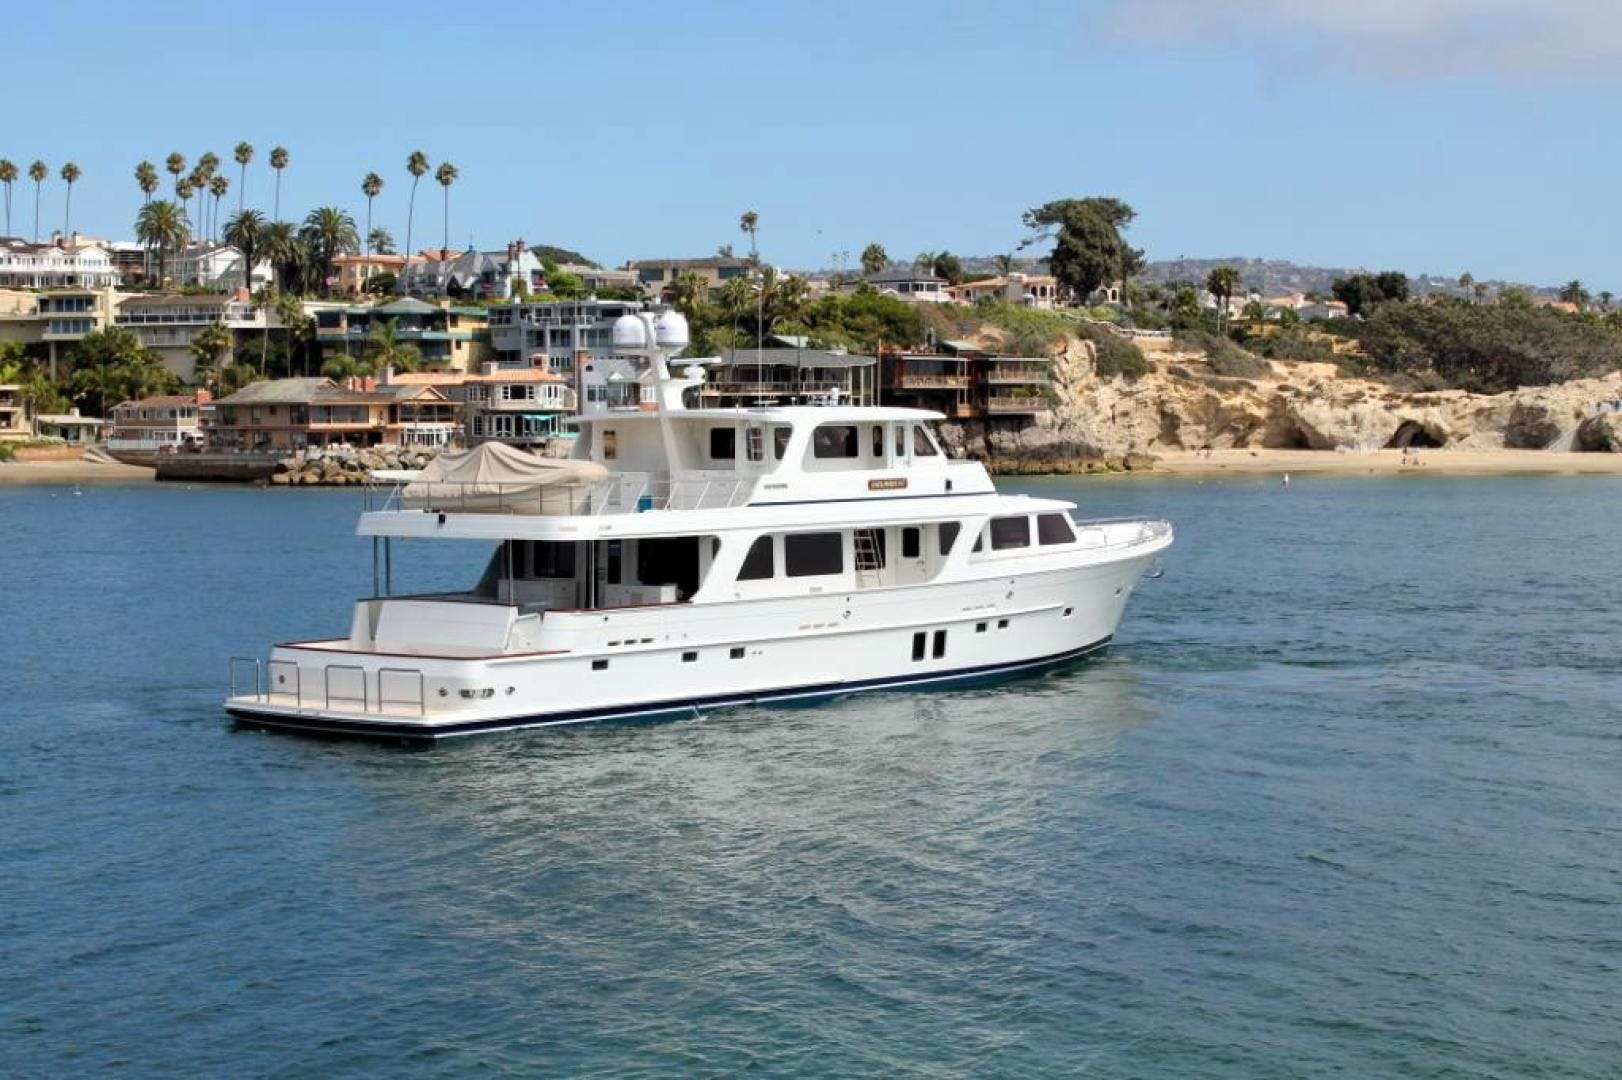 2021 Offshore Yachts 90' 80/85/90 Voyager    Picture 5 of 13